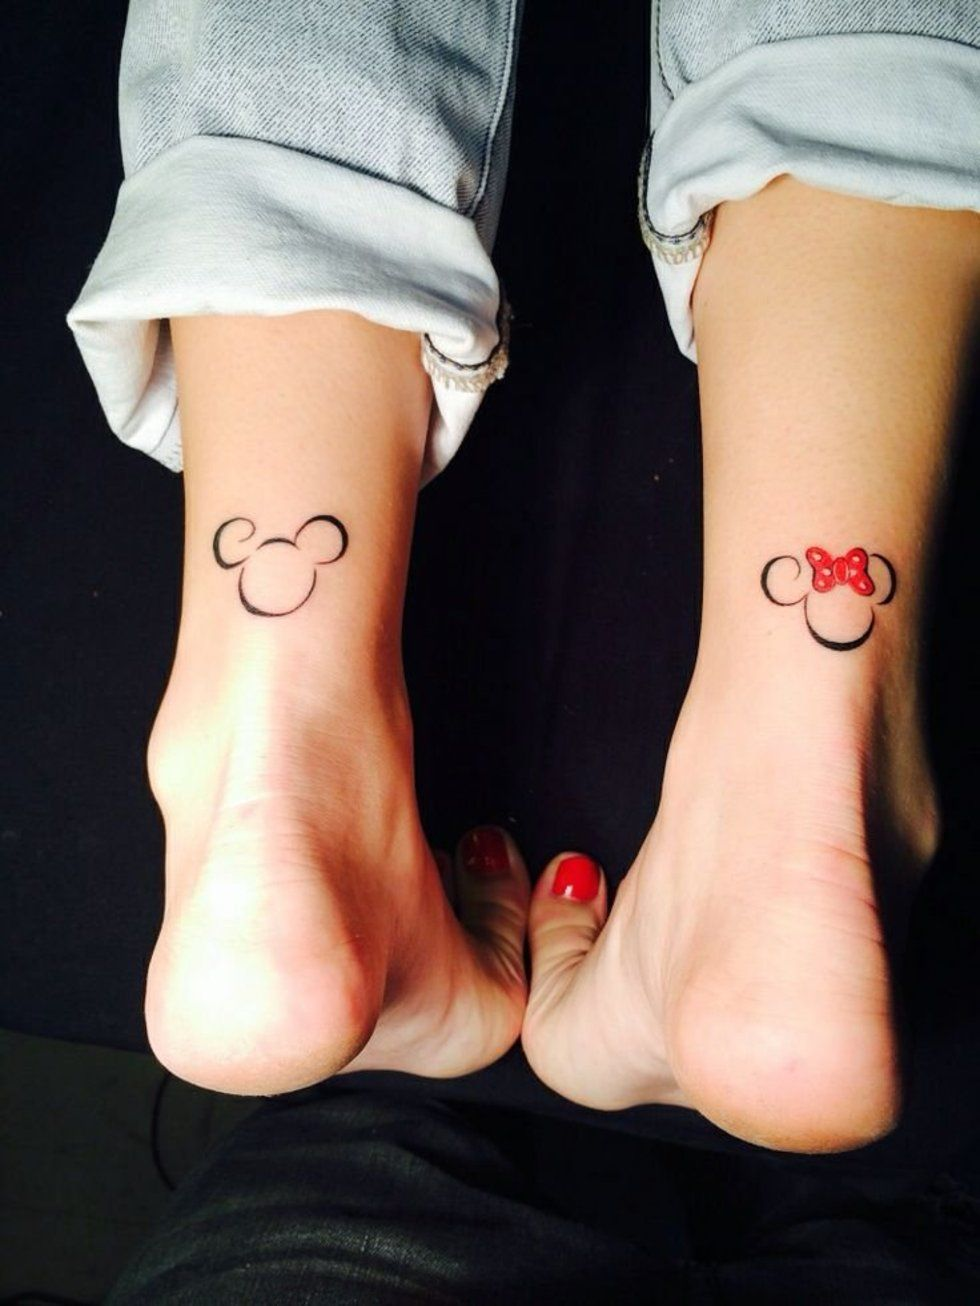 Disney tattoos and tattoo designs - Mickey And Minnie Mouse Tattoo Disney Sleeve Tattoosdisney